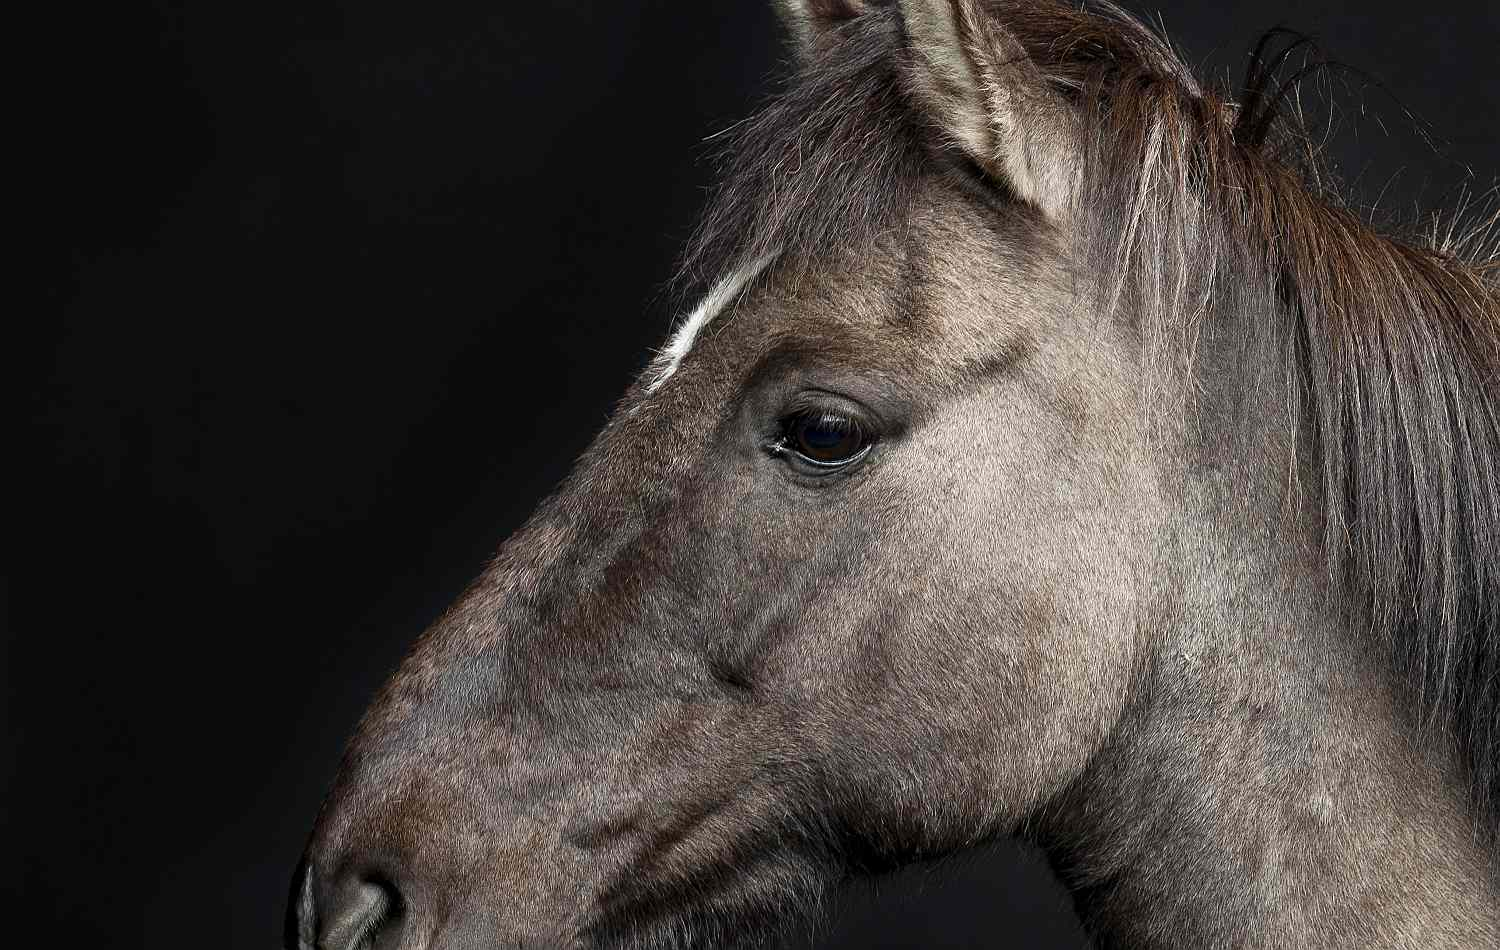 The cheek of a horse.